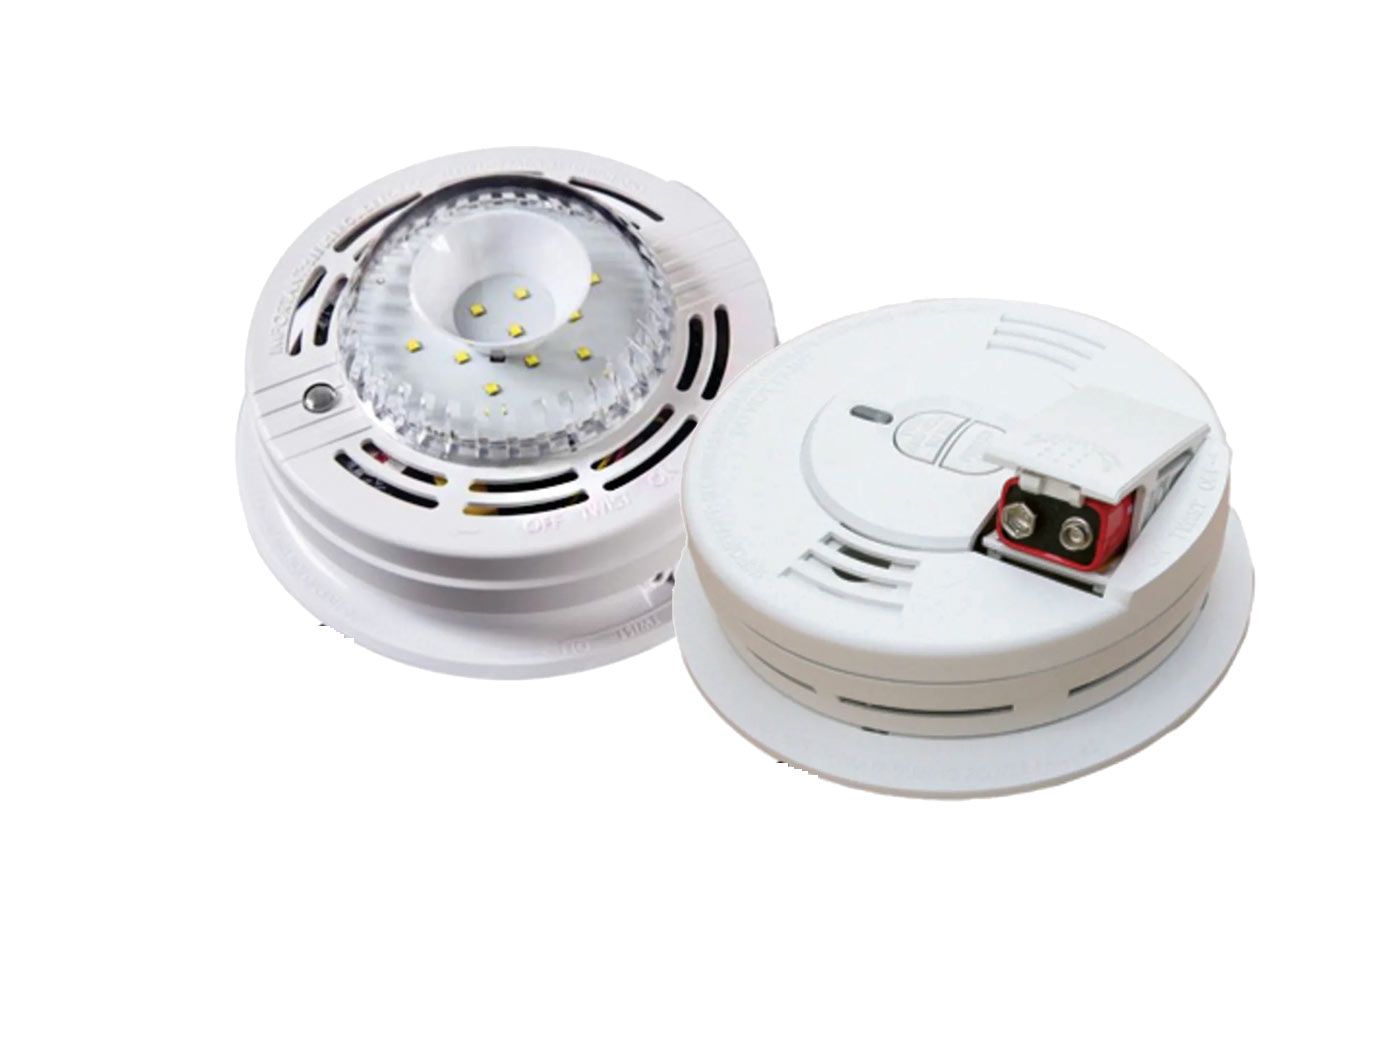 Kidde Smoke Alarm with Strobe Light